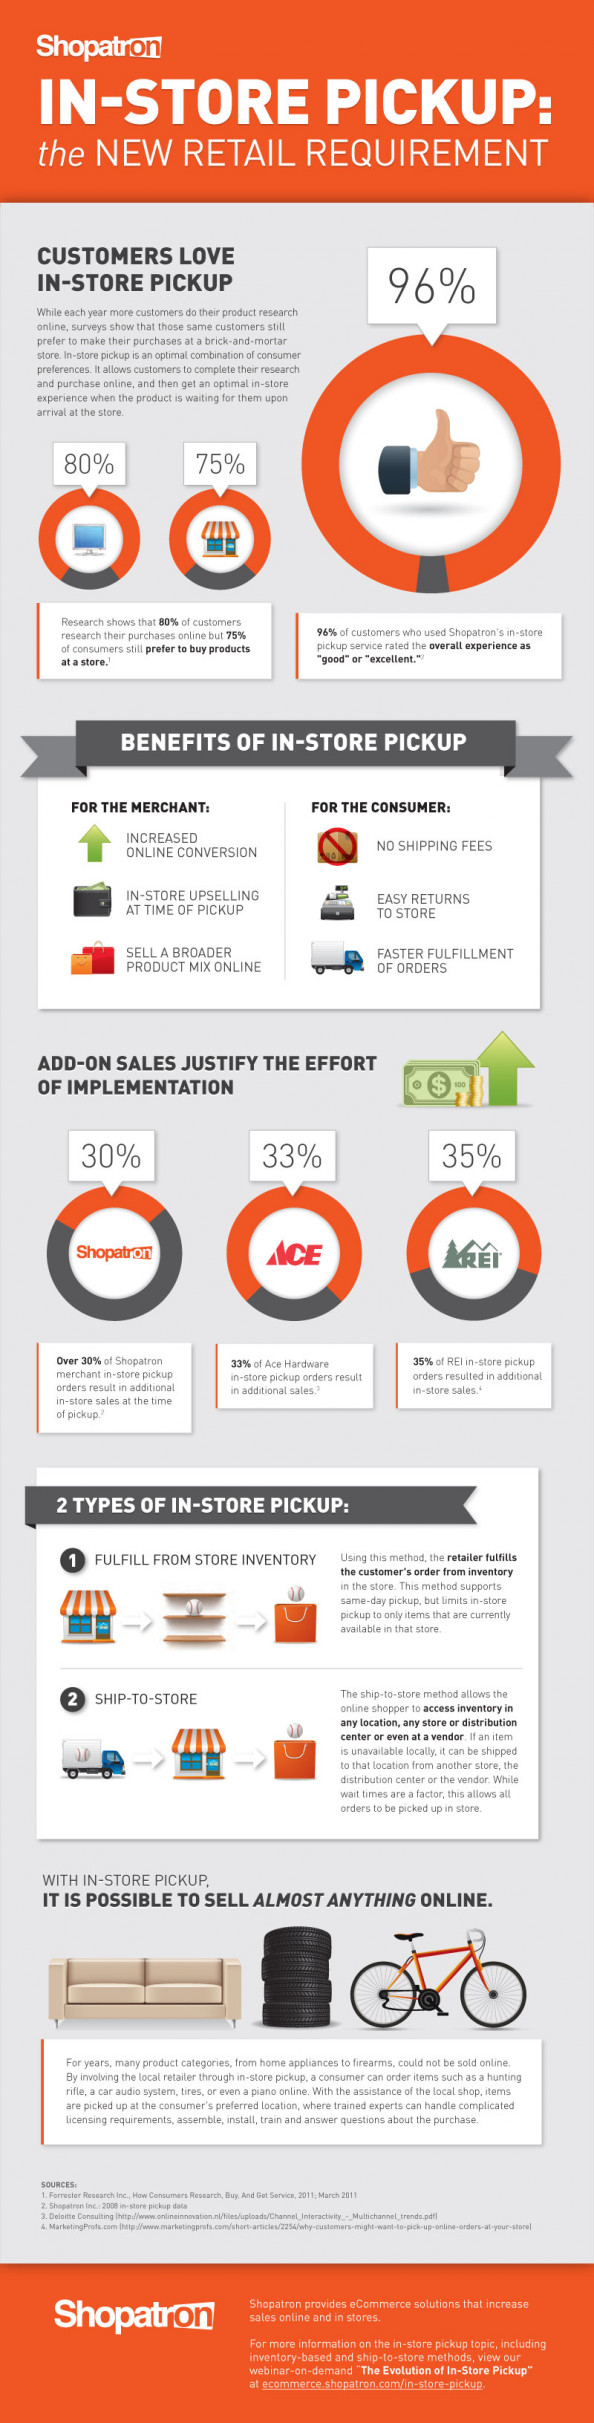 In-Store Pickup: The New Retail Requirement Infographic